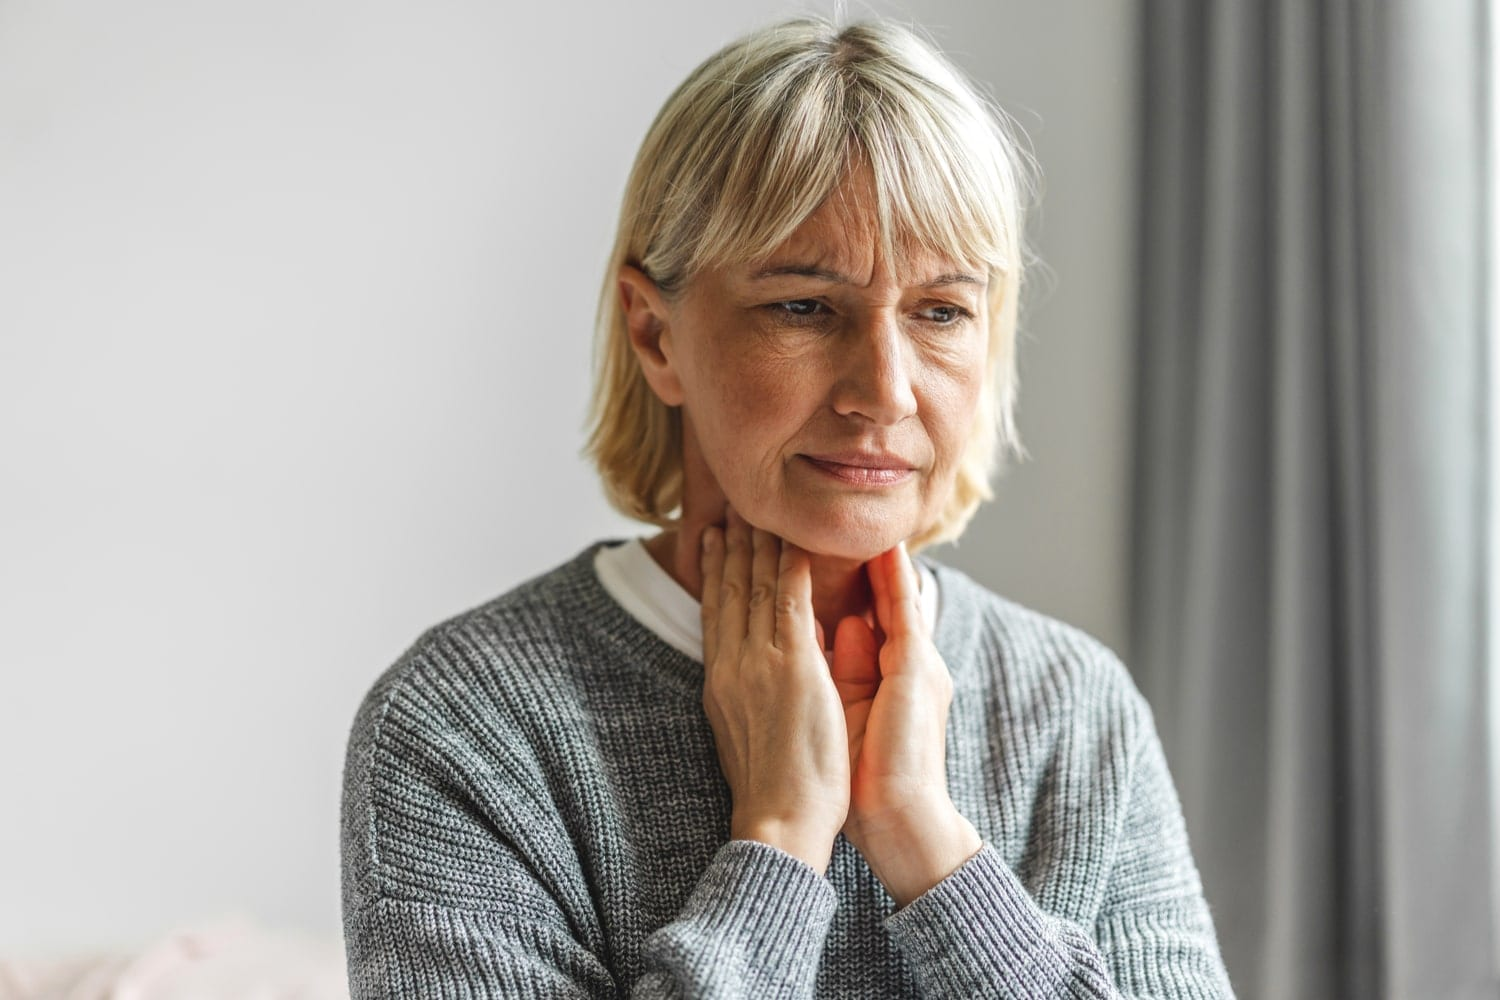 Senior Australian woman feeling ill with a pre-existing condition